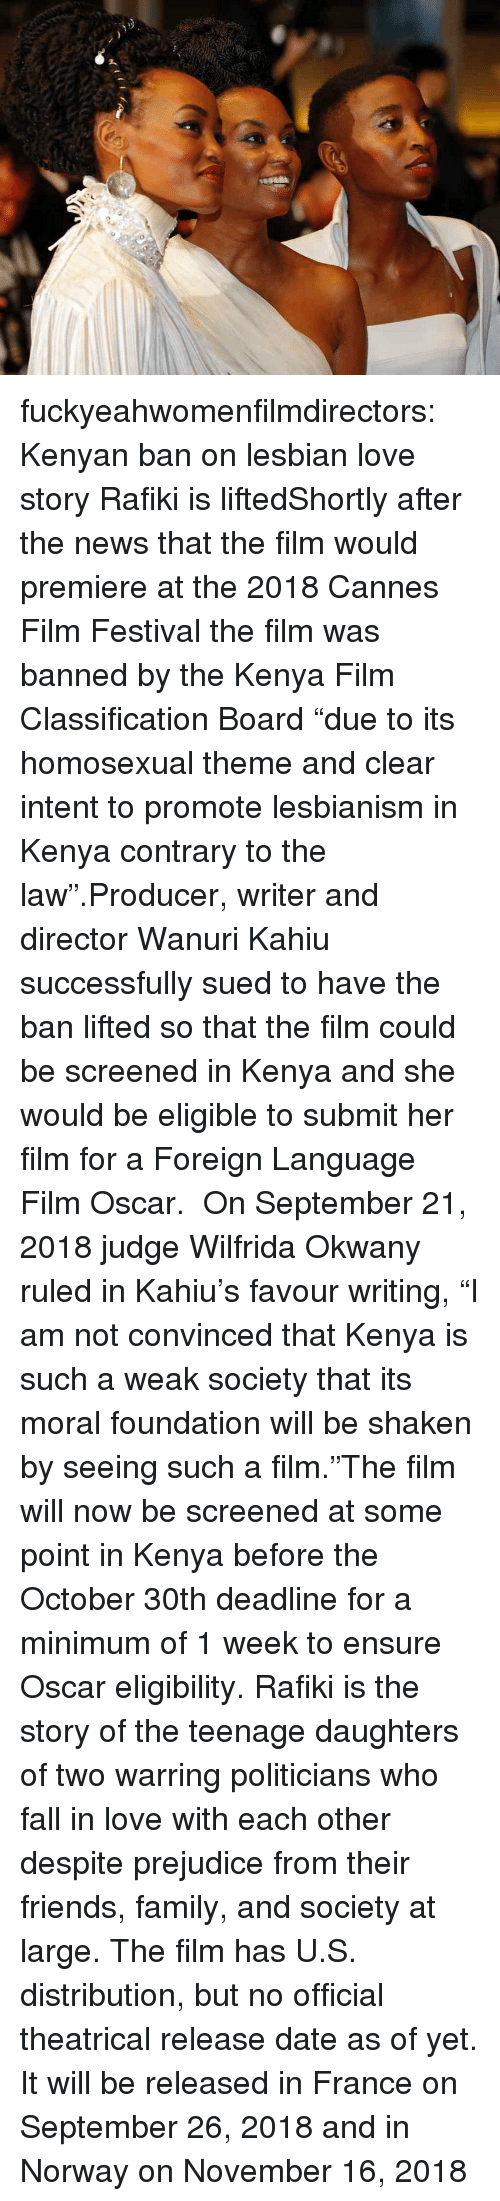 """Fall, Family, and Friends: fuckyeahwomenfilmdirectors:  Kenyan ban on lesbian love story Rafiki is liftedShortly after the news that the film would premiere at the2018 Cannes Film Festival the film was banned by the Kenya Film Classification Board """"due to its homosexual theme and clear intent to promote lesbianism in Kenya contrary to the law"""".Producer, writer and directorWanuri Kahiu successfully sued to have the ban lifted so that the film could be screened in Kenya and she would be eligible to submit her film for a Foreign Language Film Oscar. On September 21, 2018 judge Wilfrida Okwany ruled in Kahiu's favour writing, """"I am not convinced that Kenya is such a weak society that its moral foundation will be shaken by seeing such a film.""""The film will now be screened at some point in Kenya before the October 30th deadline for a minimum of 1 week to ensure Oscar eligibility.Rafiki is the story of the teenage daughters of two warring politicians who fall in love with each other despite prejudice from their friends, family, and society at large. The film has U.S. distribution, but no official theatrical release date as of yet. It will be released in France on September 26, 2018 and in Norway on November 16, 2018"""